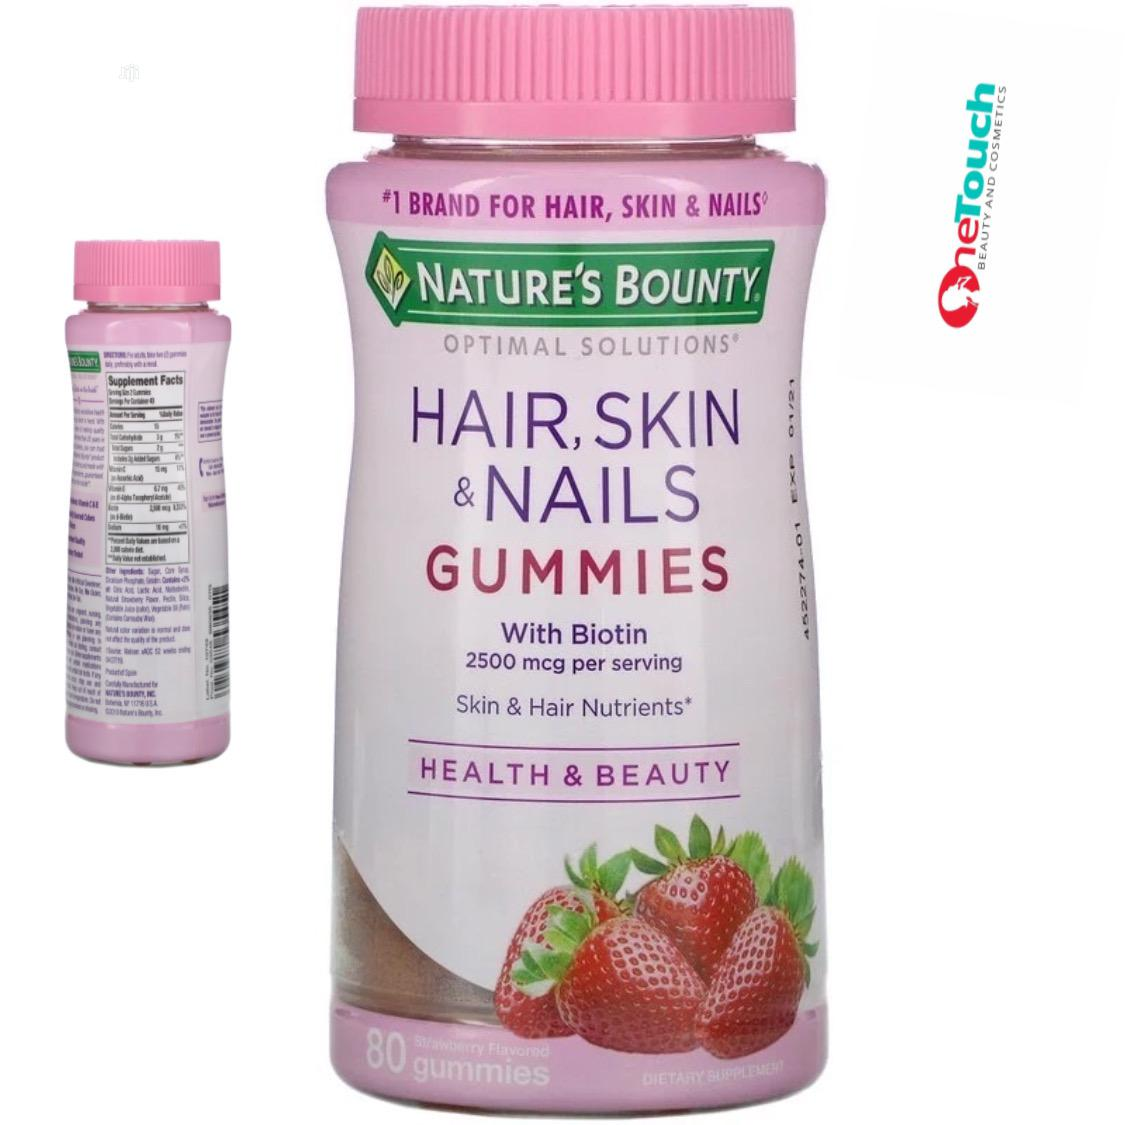 Nature's Bounty, 80 Gummies